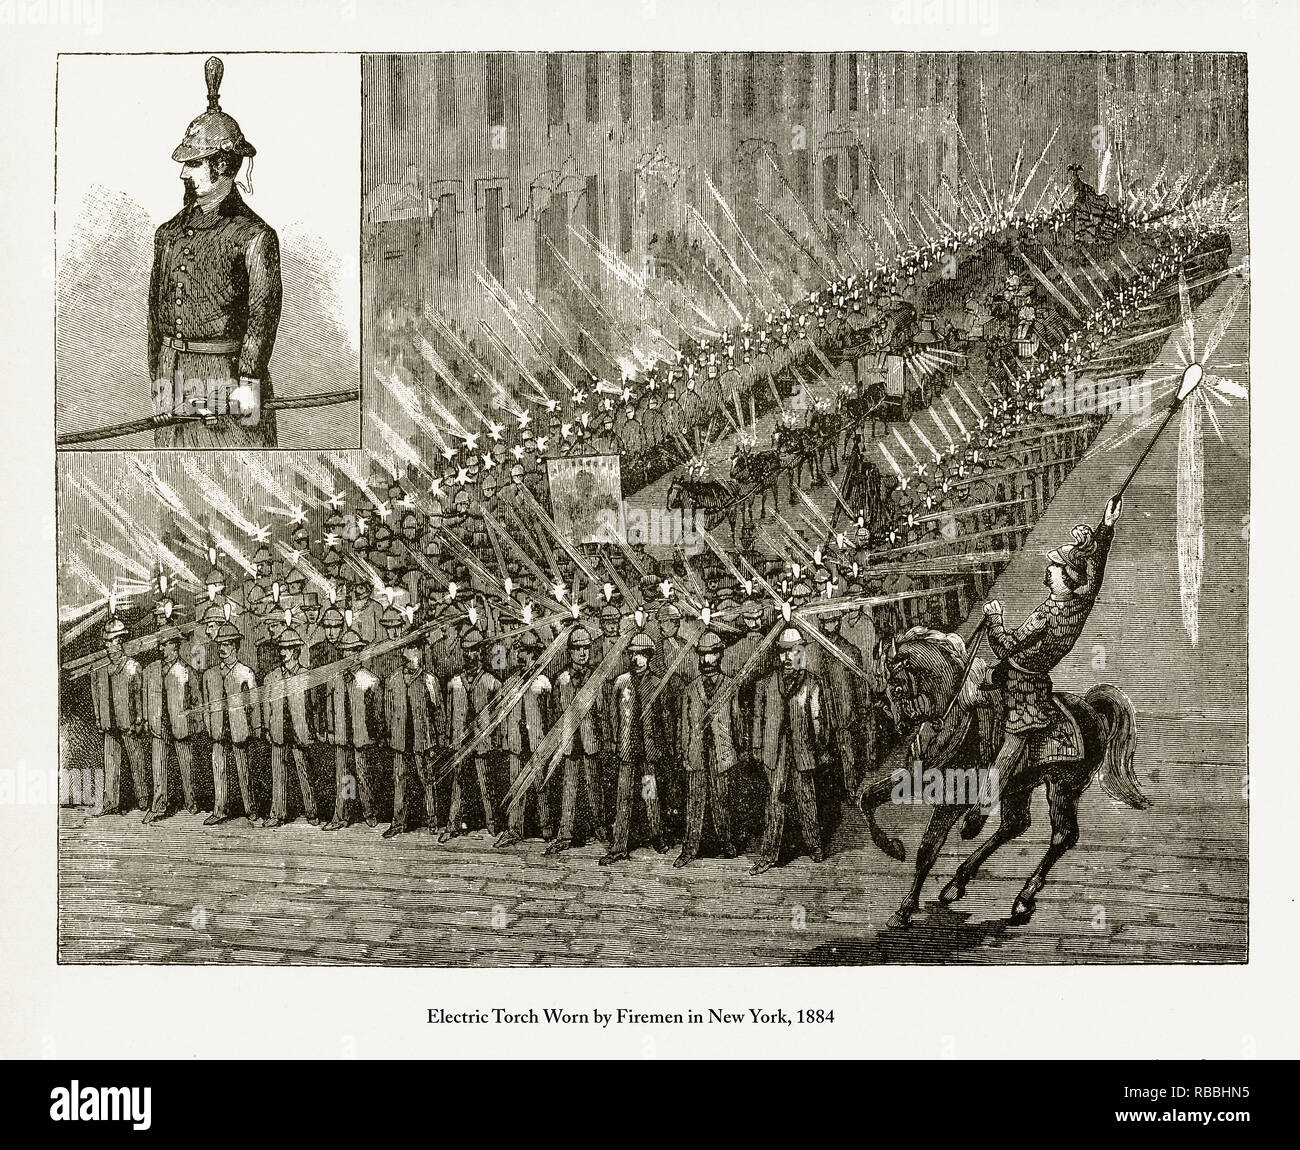 Electric Torch Worn by Firemen in New York Engraving - Stock Image